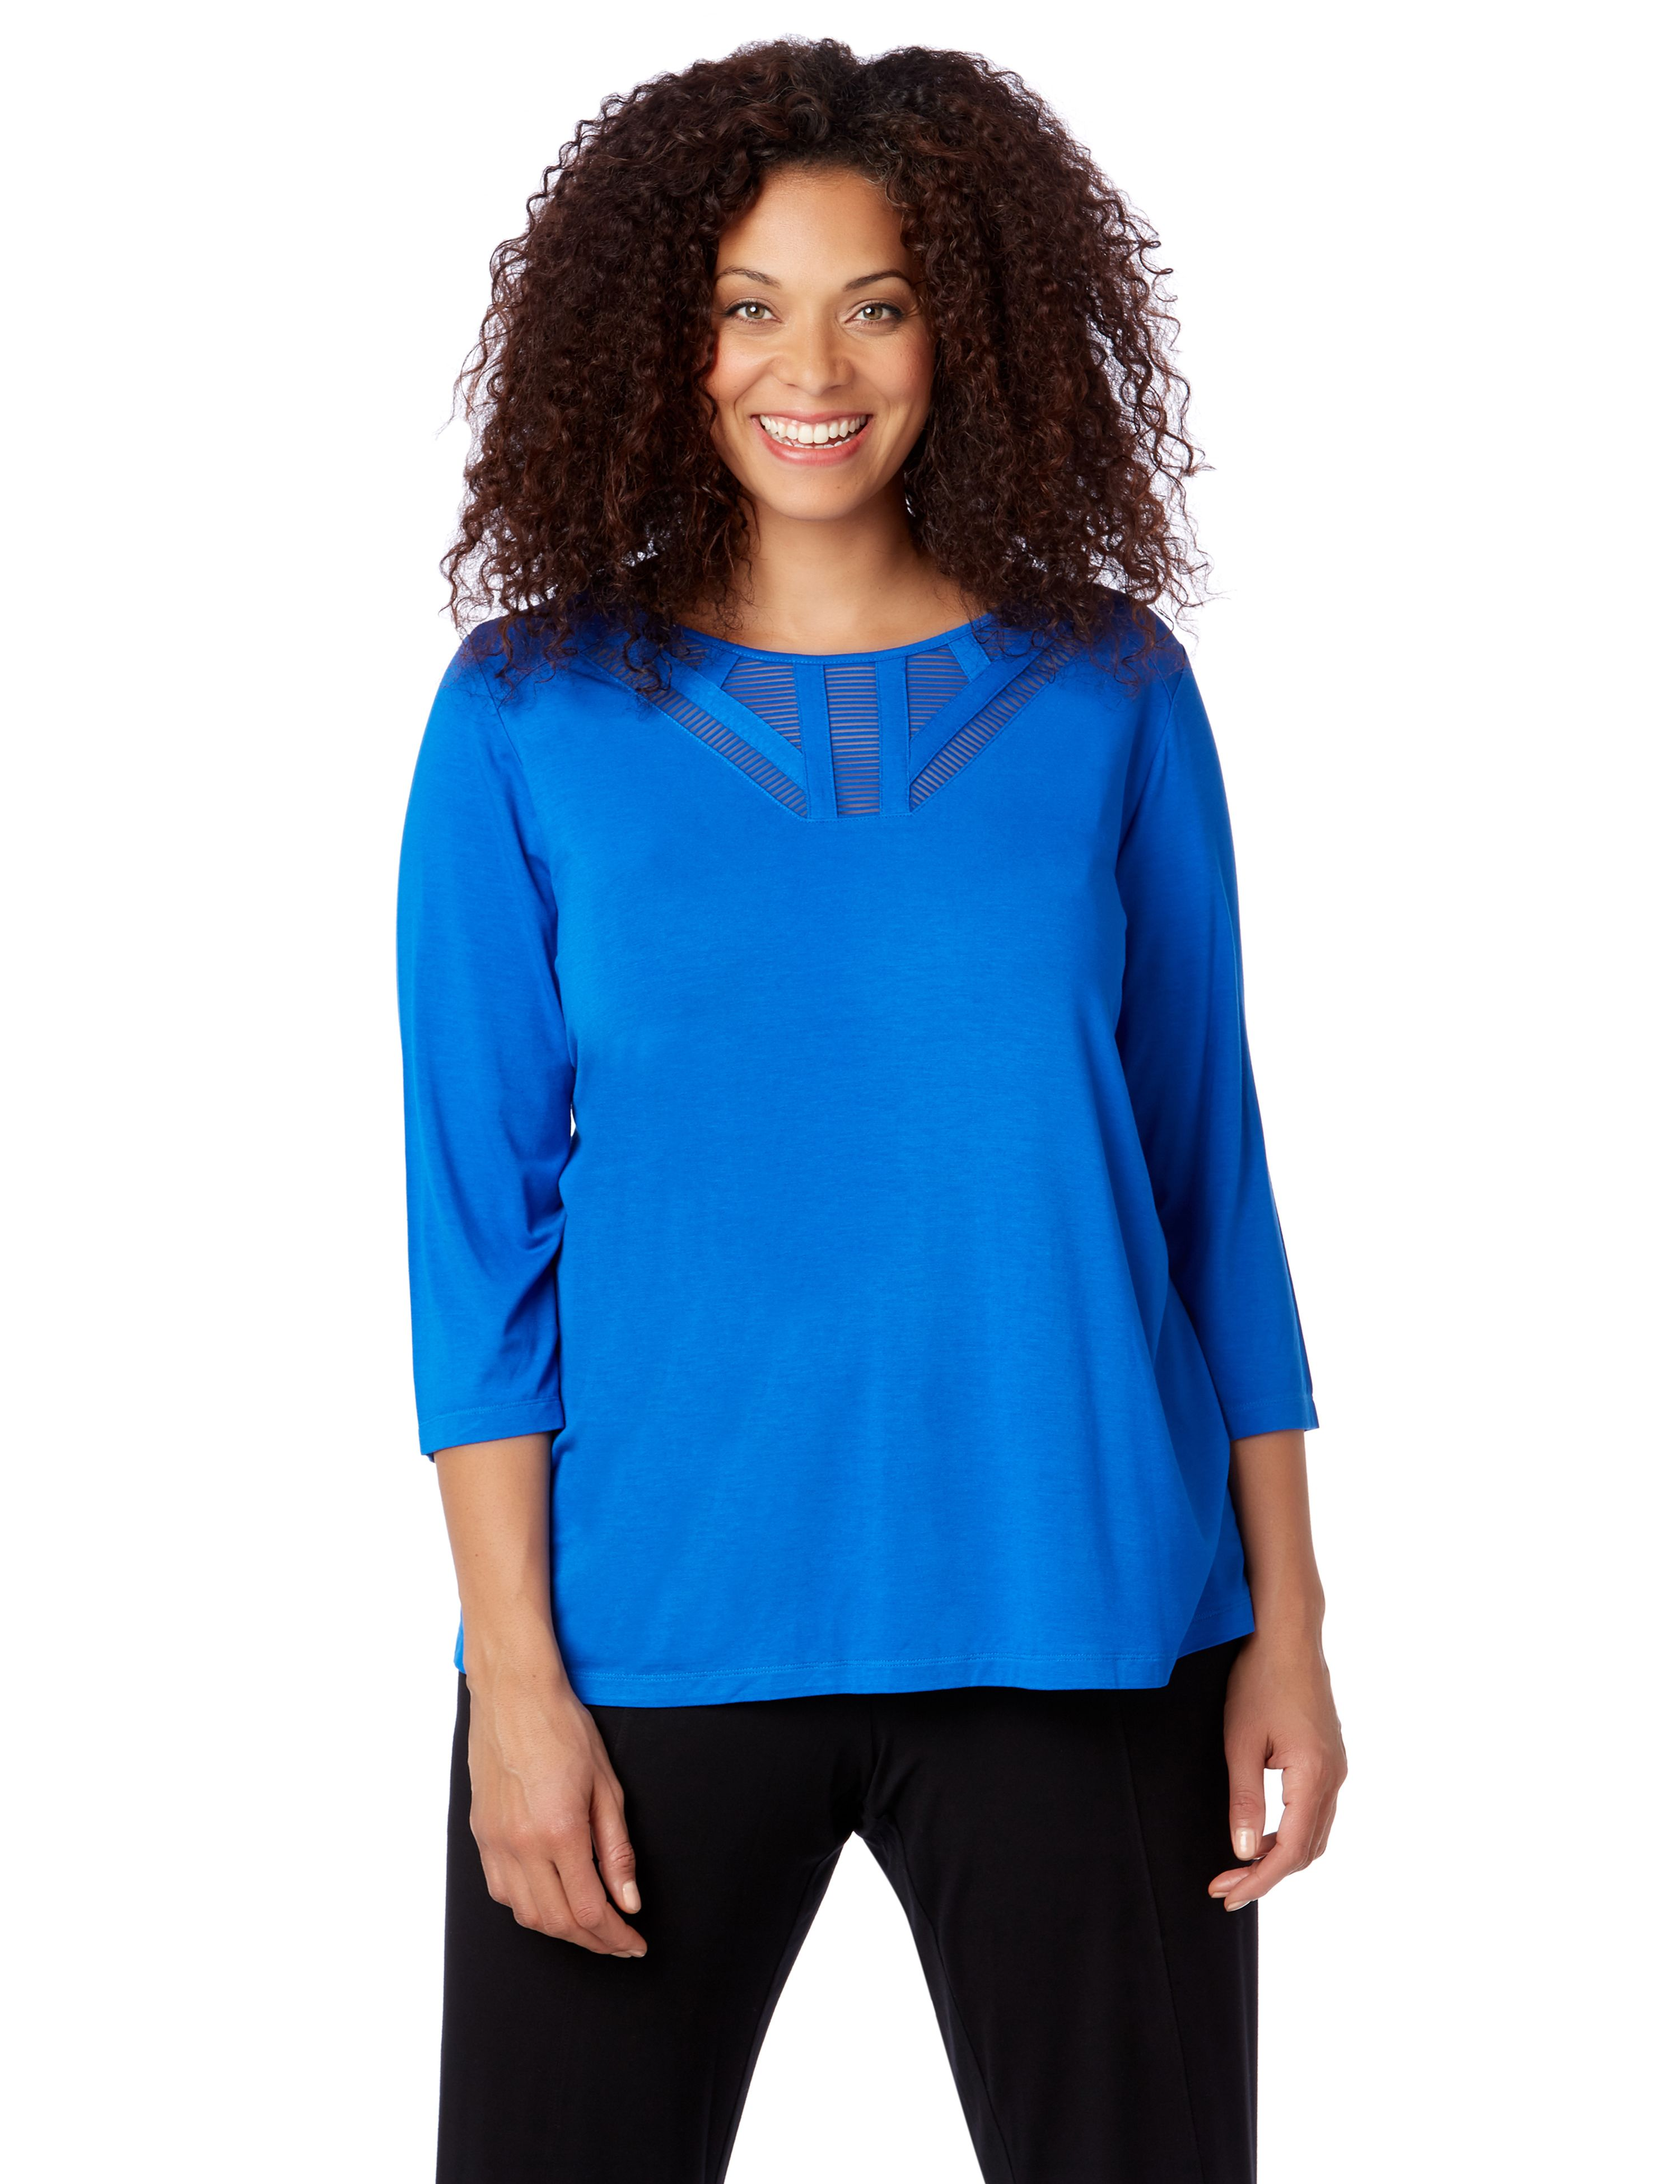 AnyWear Illusion Top 1091179 Anywear Rayon Span Neck Det MP-300094487